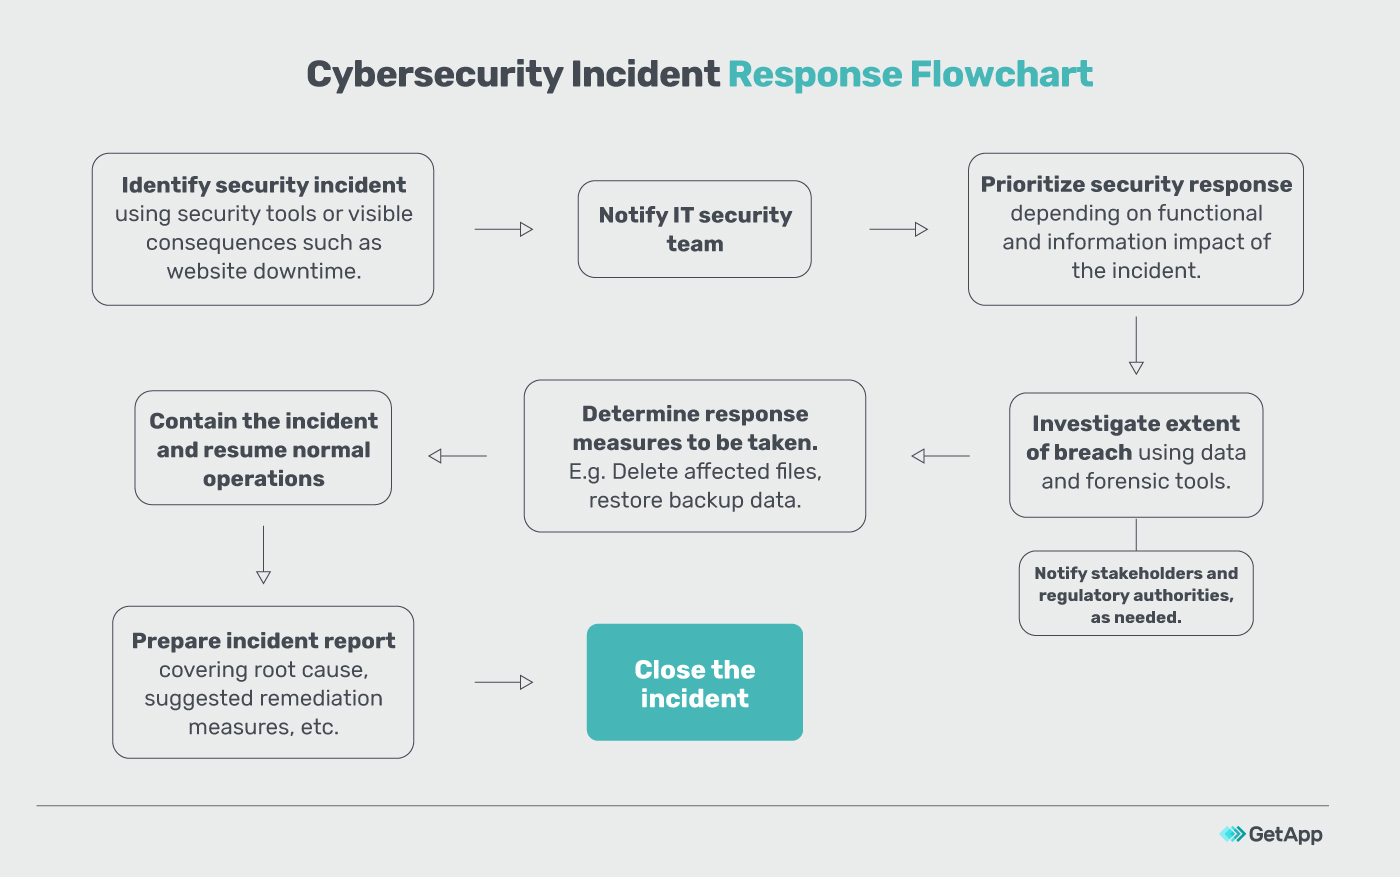 A sample incident response flowchart by GetApp